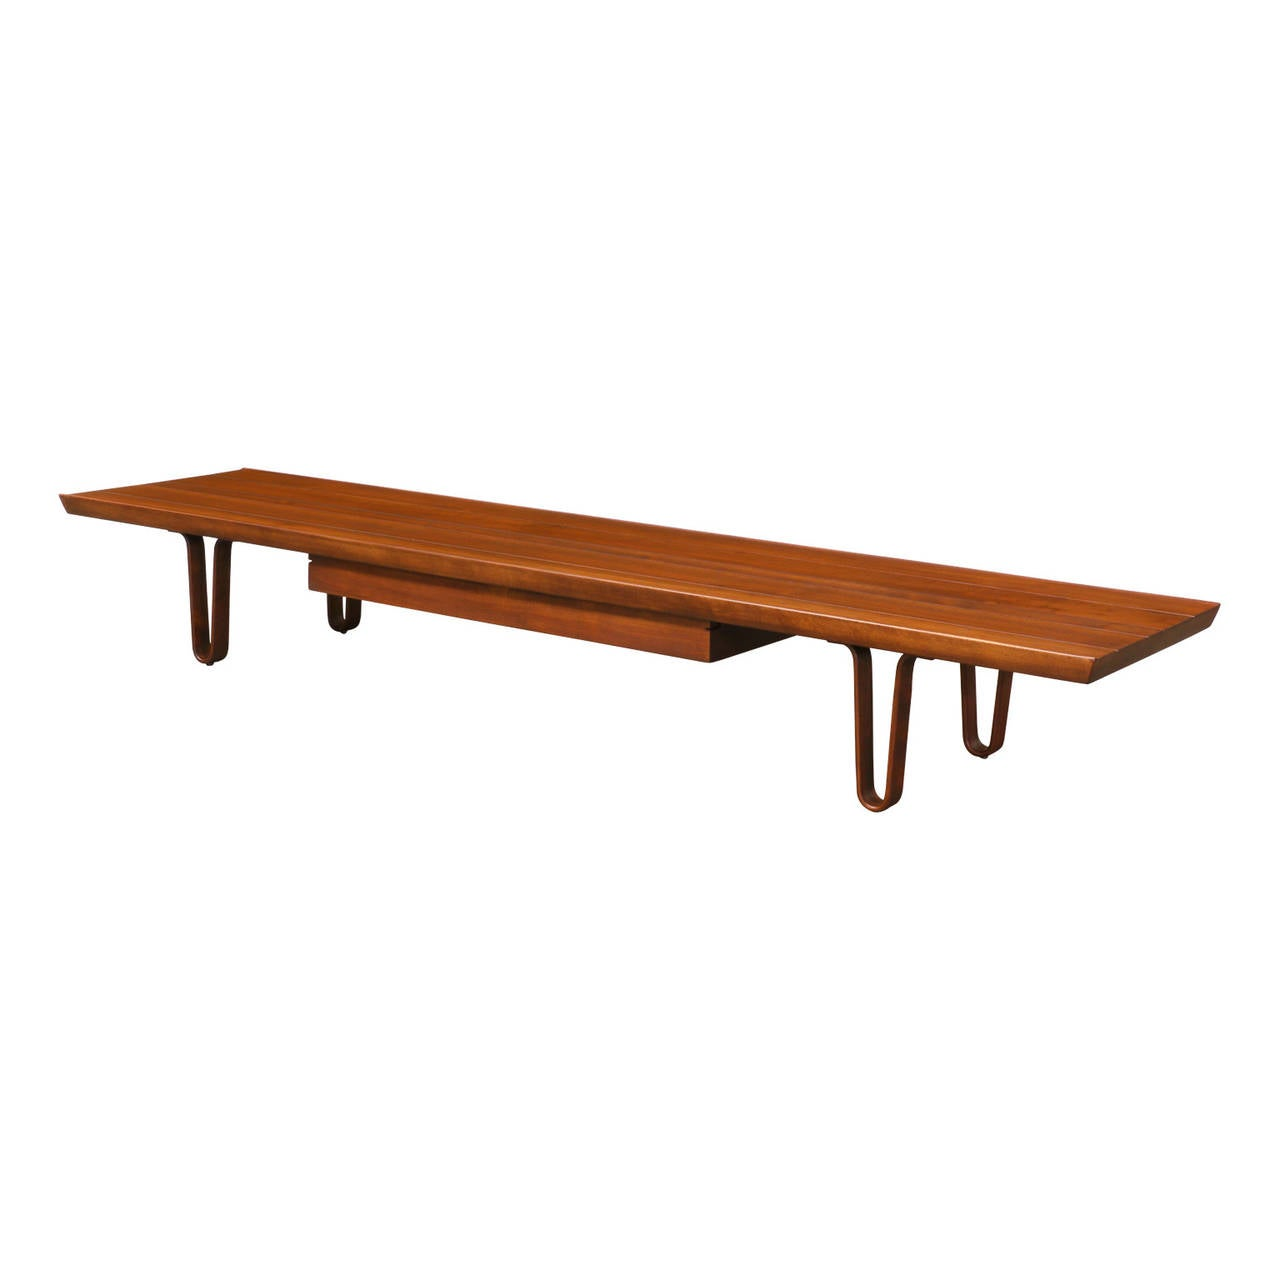 Edward j wormley low profile bench or coffee table for for Cocktail table with 4 benches